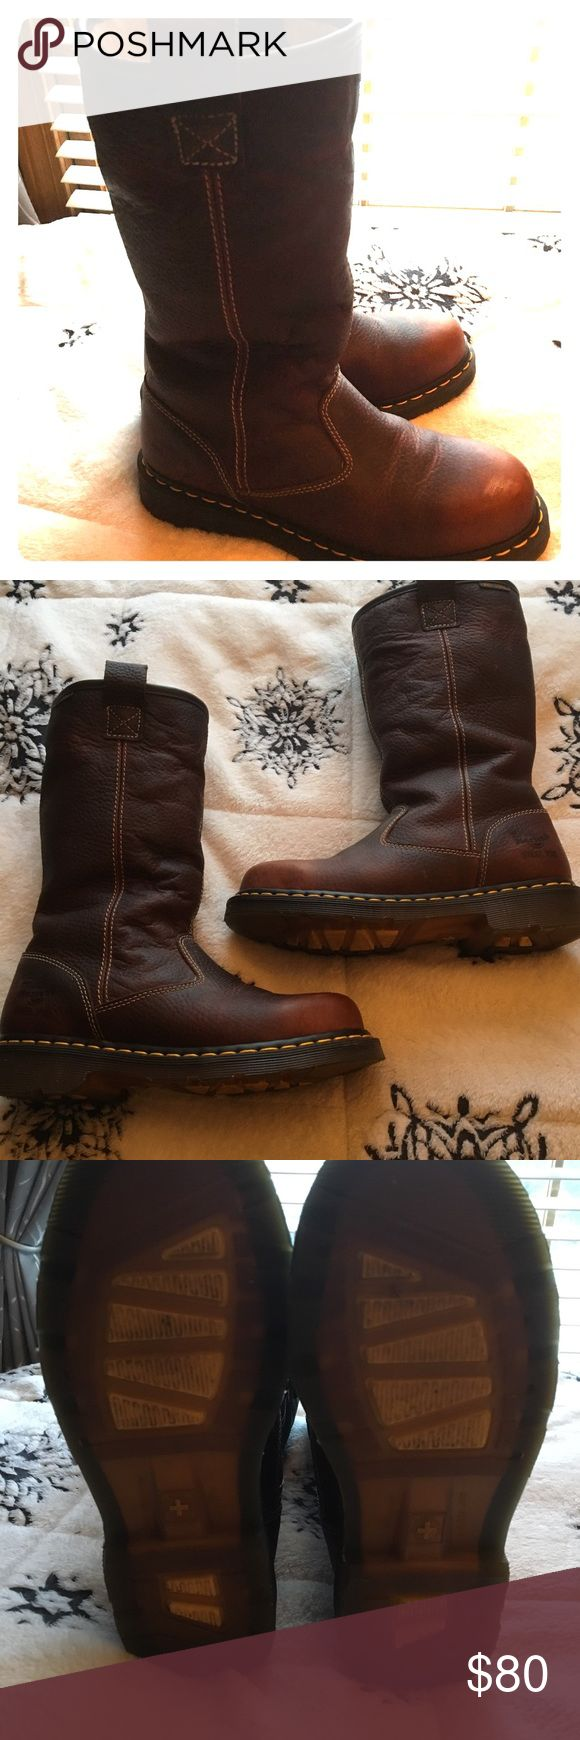 Dr Martens Women's Safety Rigger Boots Women's steel toe Dr Martens steel toe boots (UK) Size 7 US Very warm inside.    Can be cuffed (see screen shot)  Worn once.  Too big for me.   Contact with any questions Dr. Martens Shoes Combat & Moto Boots